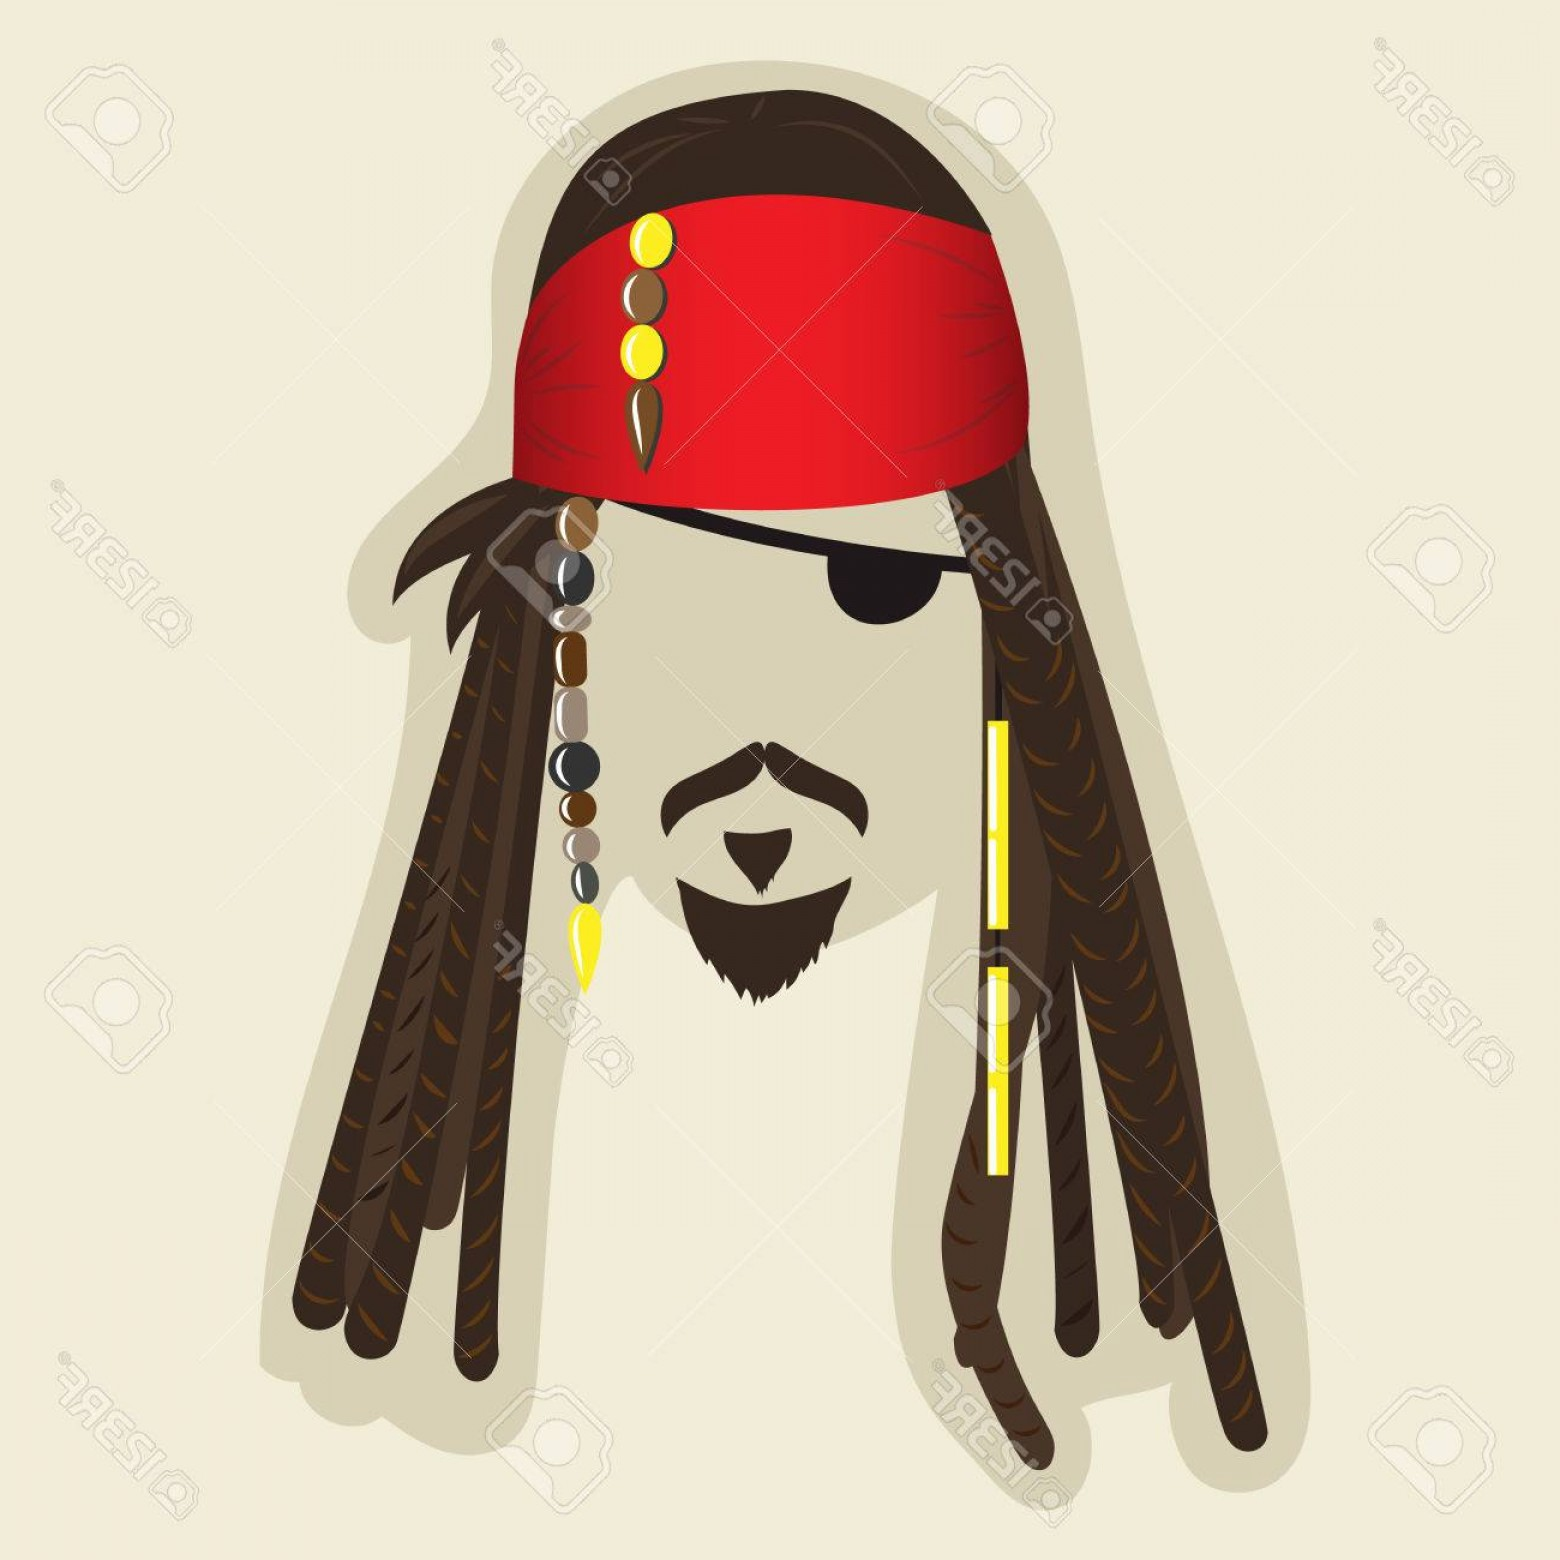 Jack Sparrow Vector Logo: Photostock Vector Vector Pirate Elements For Photo Booth Or Collage Face Symbol Of A Pirate With Dreadlocks Bandana Mu